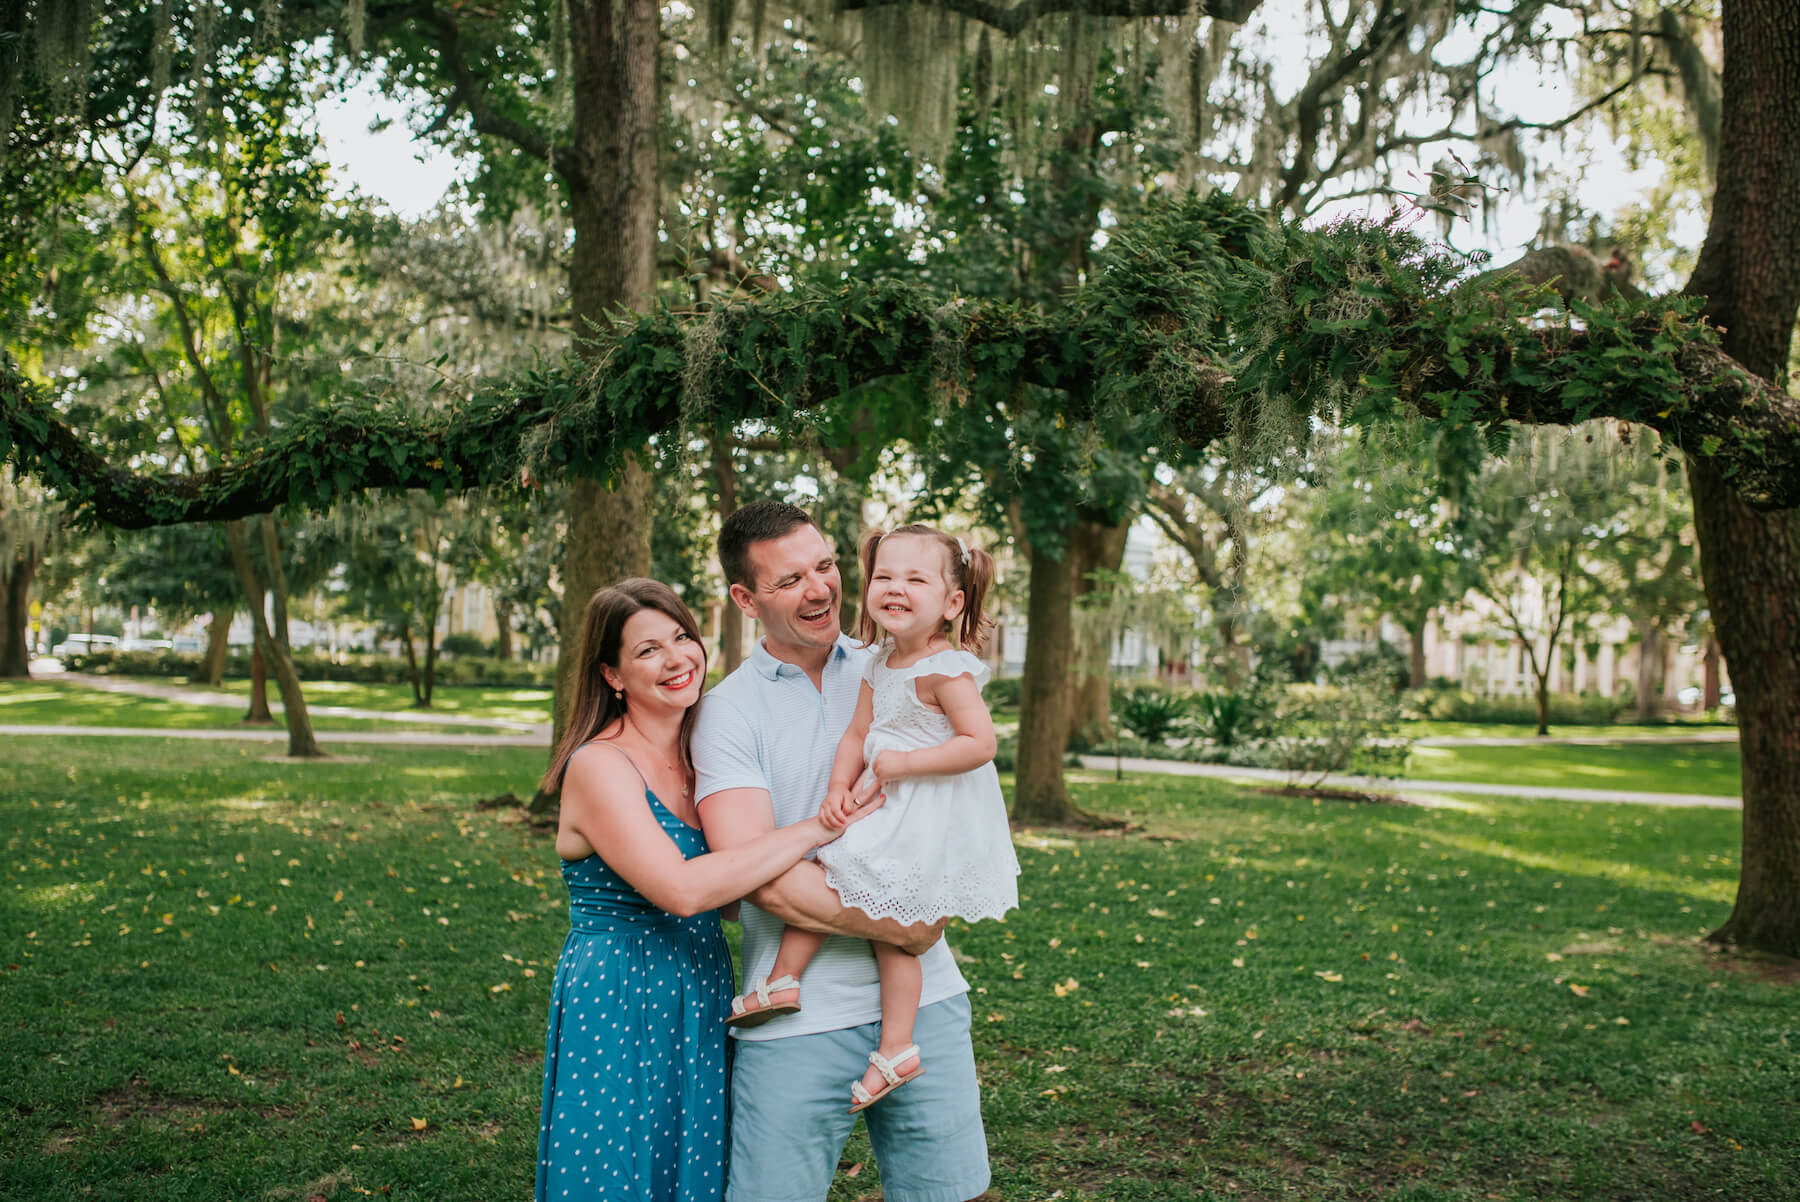 a family of three in a park in Savannah, Georgia, United States of America